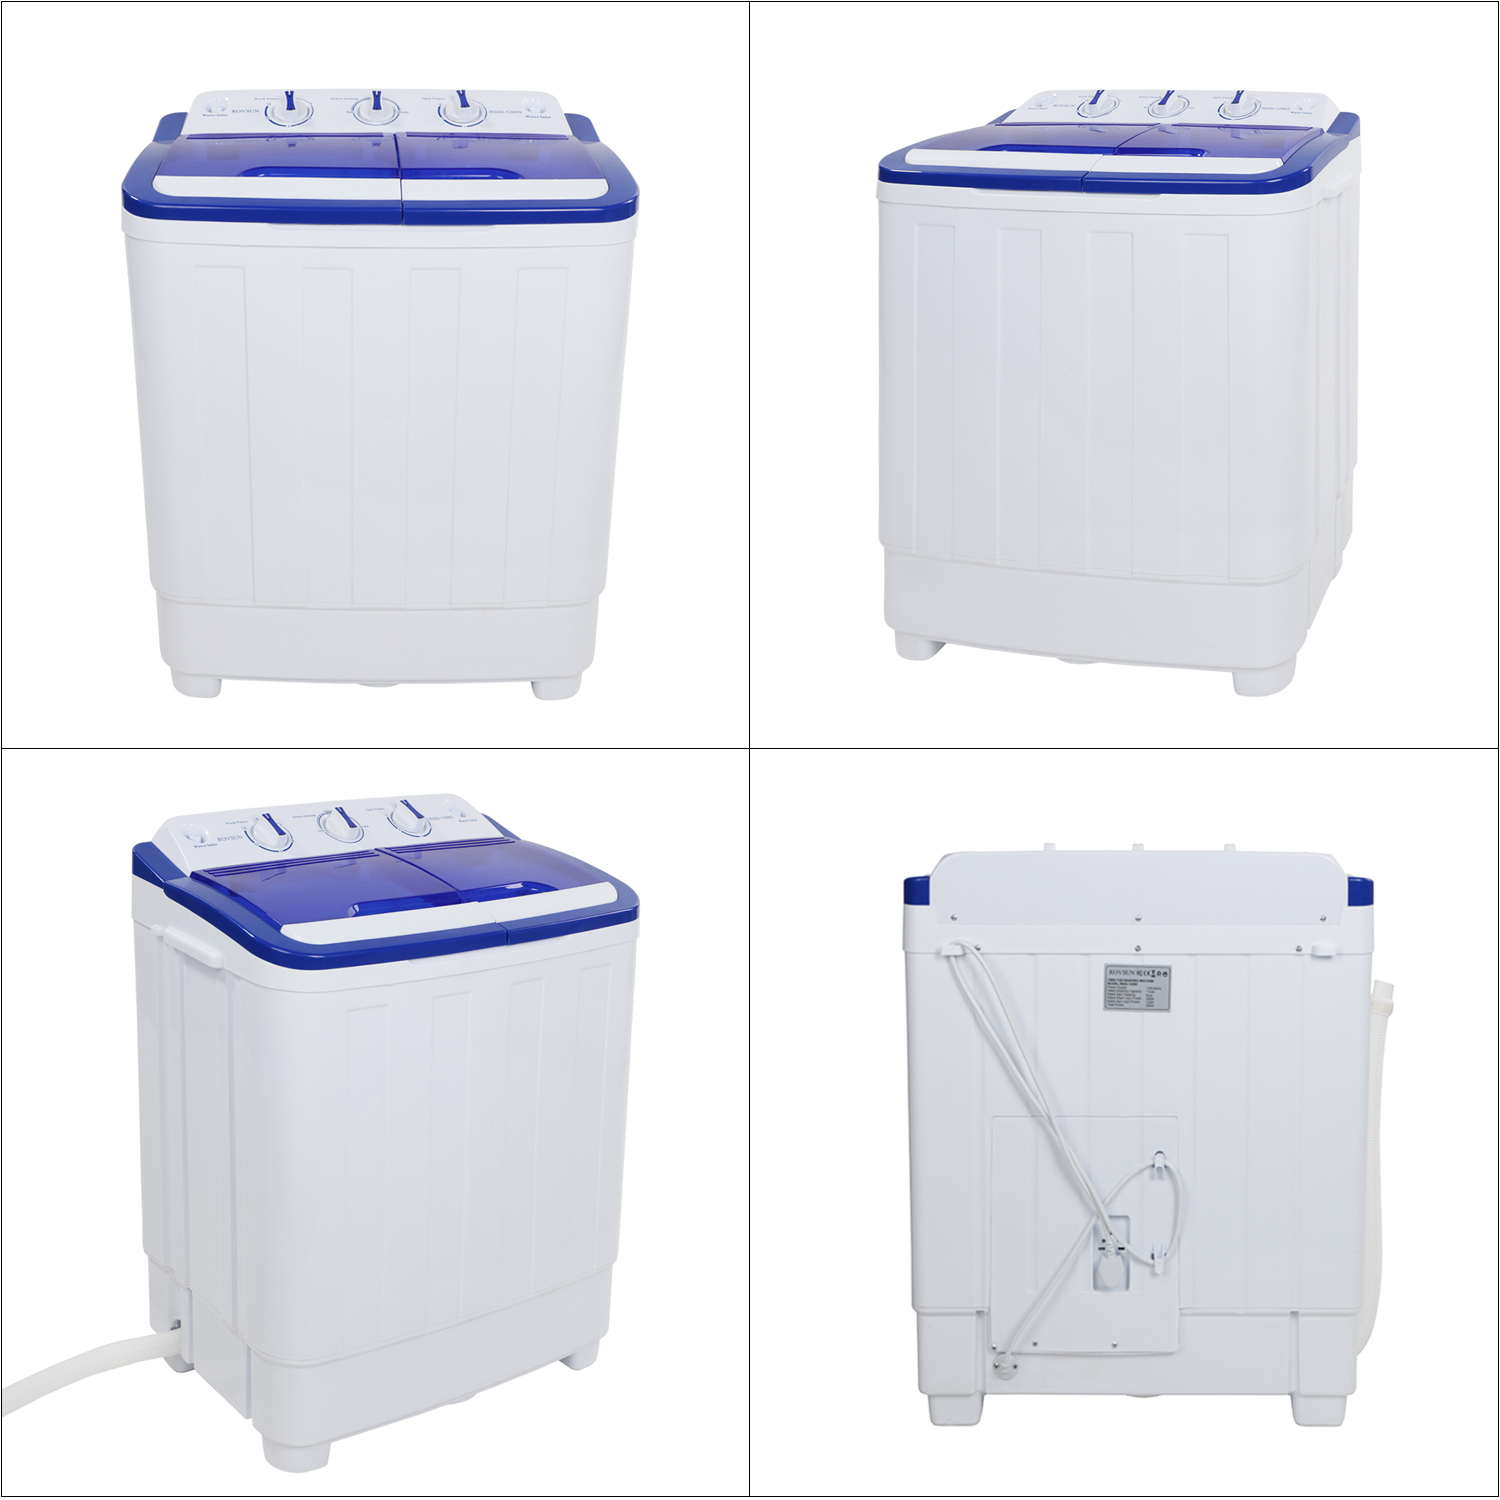 Ktaxon Mini Portable Washing Machine/Spin Wash 16/11/13Lbs Capacity Compact Washer for Clothes